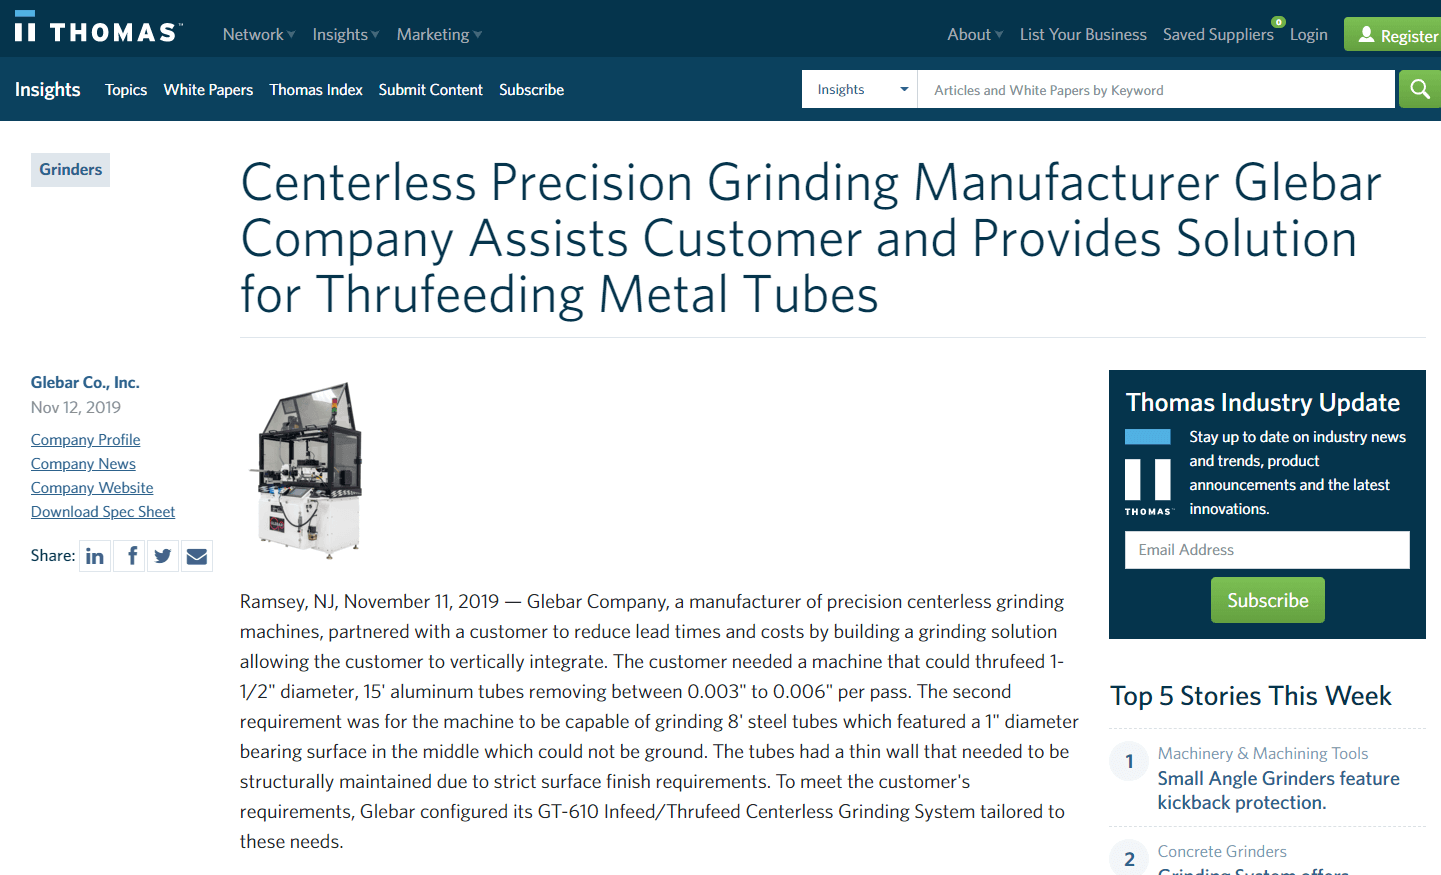 Centerless Precision Grinding Manufacturer Glebar Company Assists Customer and Provides Solution for Thrufeeding Metal Tubes